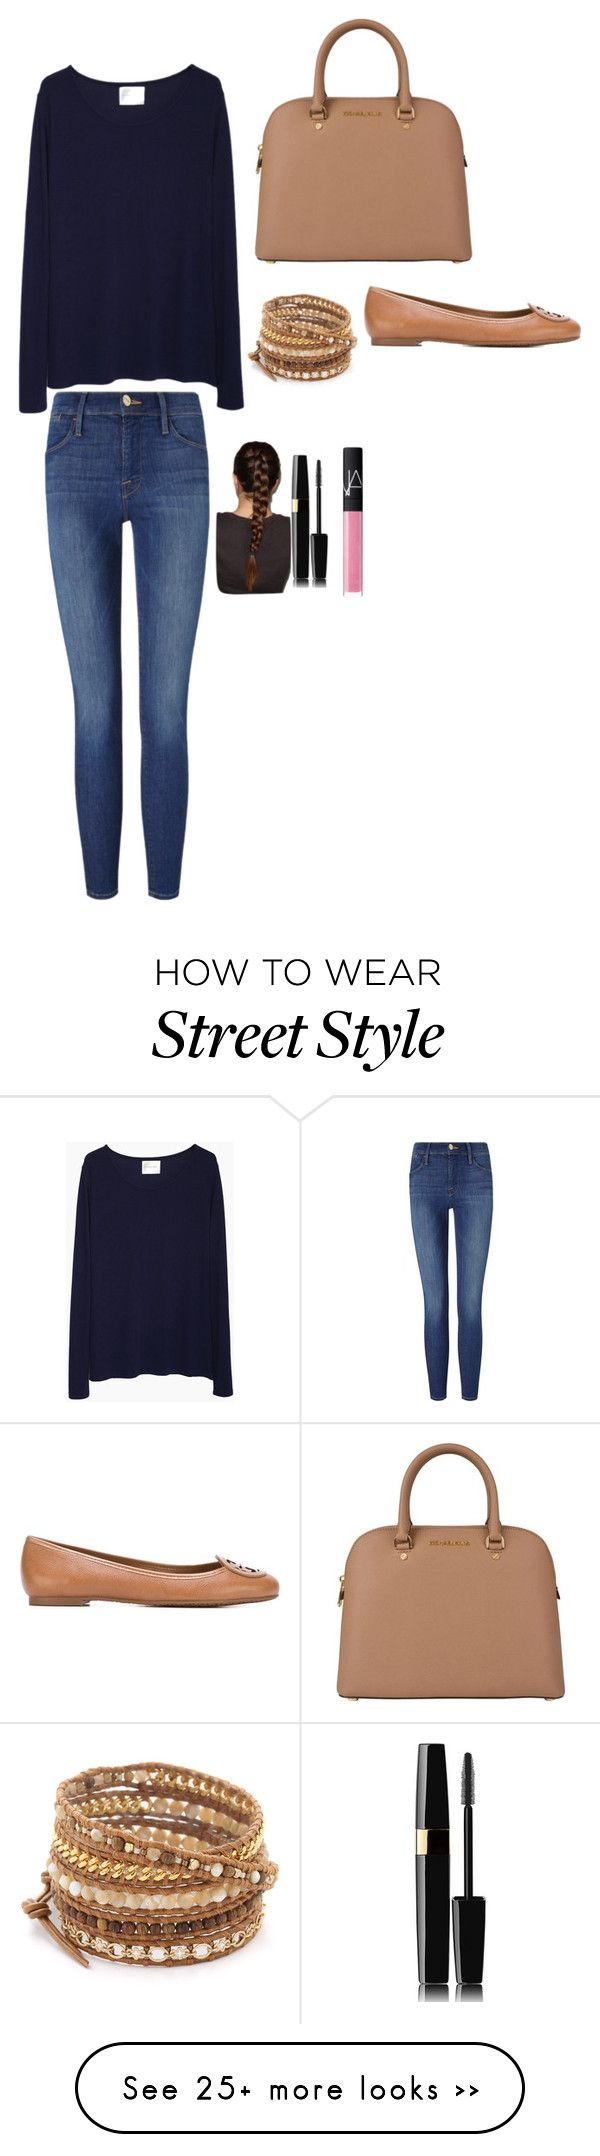 """""""Untitled #85"""" by lalmosawi on Polyvore featuring La Garçonne Moderne, Frame Denim, Tory Burch, Chan Luu and NARS Cosmetics"""